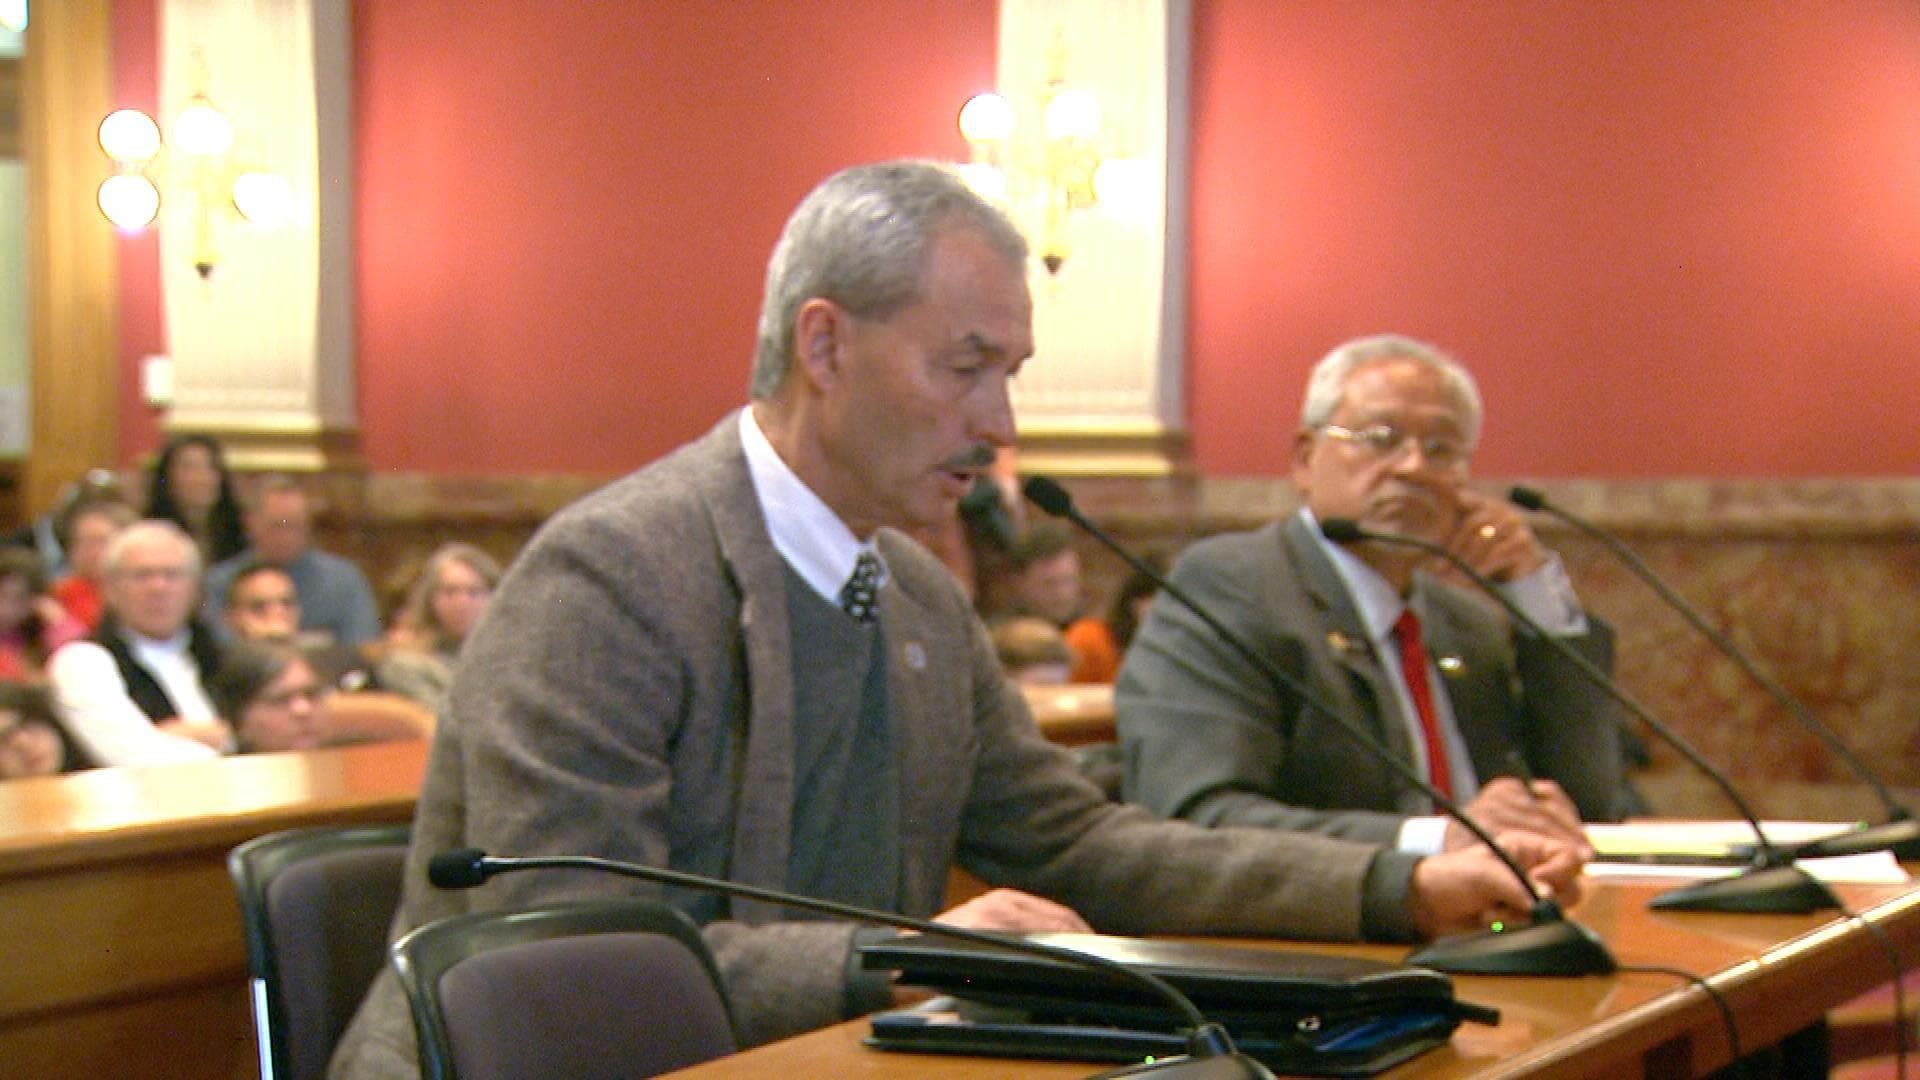 Colorado Bureau of Investigation Director Ron Sloan testified before a state senate committee that some 6200 background checks performed were due to the new enhanced law, which may not be correct. (Photo credit: CBS Denver)